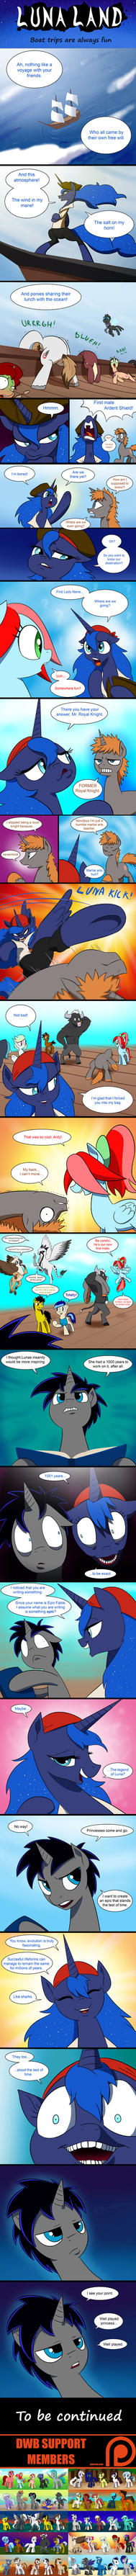 Luna Land Episode 2.0 by doubleWbrothers